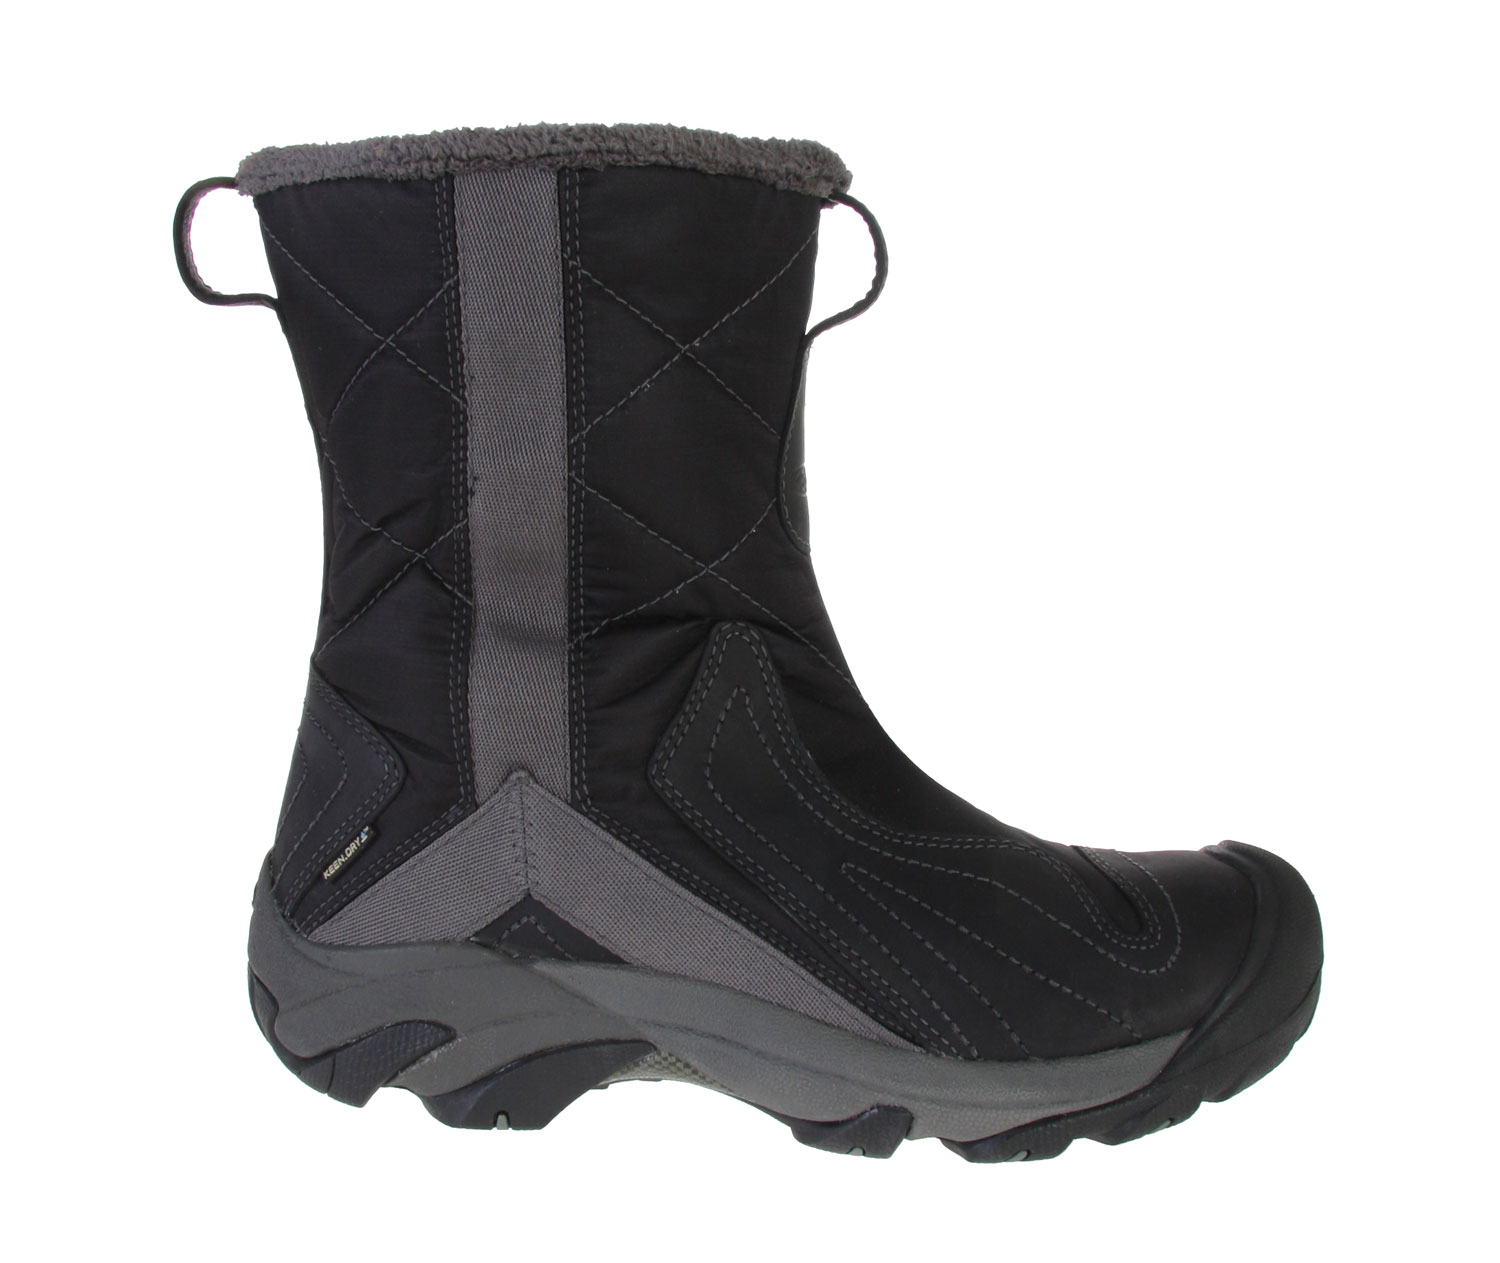 If you want to look stylish and be ultra warm at the same time, the answer is this. The Keen Betty Boots offers the ultimate snow boots, perfect for a winter season. Durable and long lasting, this high quality boot offers great insulation assuring warm feet all season long. Its good heel support structure and thermal heat footbed makes this the ideal pair of boots to own. Watch out ladies, this is a winter must have item.Key Features of the Keen Betty Boots: 200g KEEN.Warm insulation KEEN.DRY waterproof breathable membrane S3 Heel support structure Side zipper for easy on and off Thermal heat shield footbed. Women's specific design - $83.95